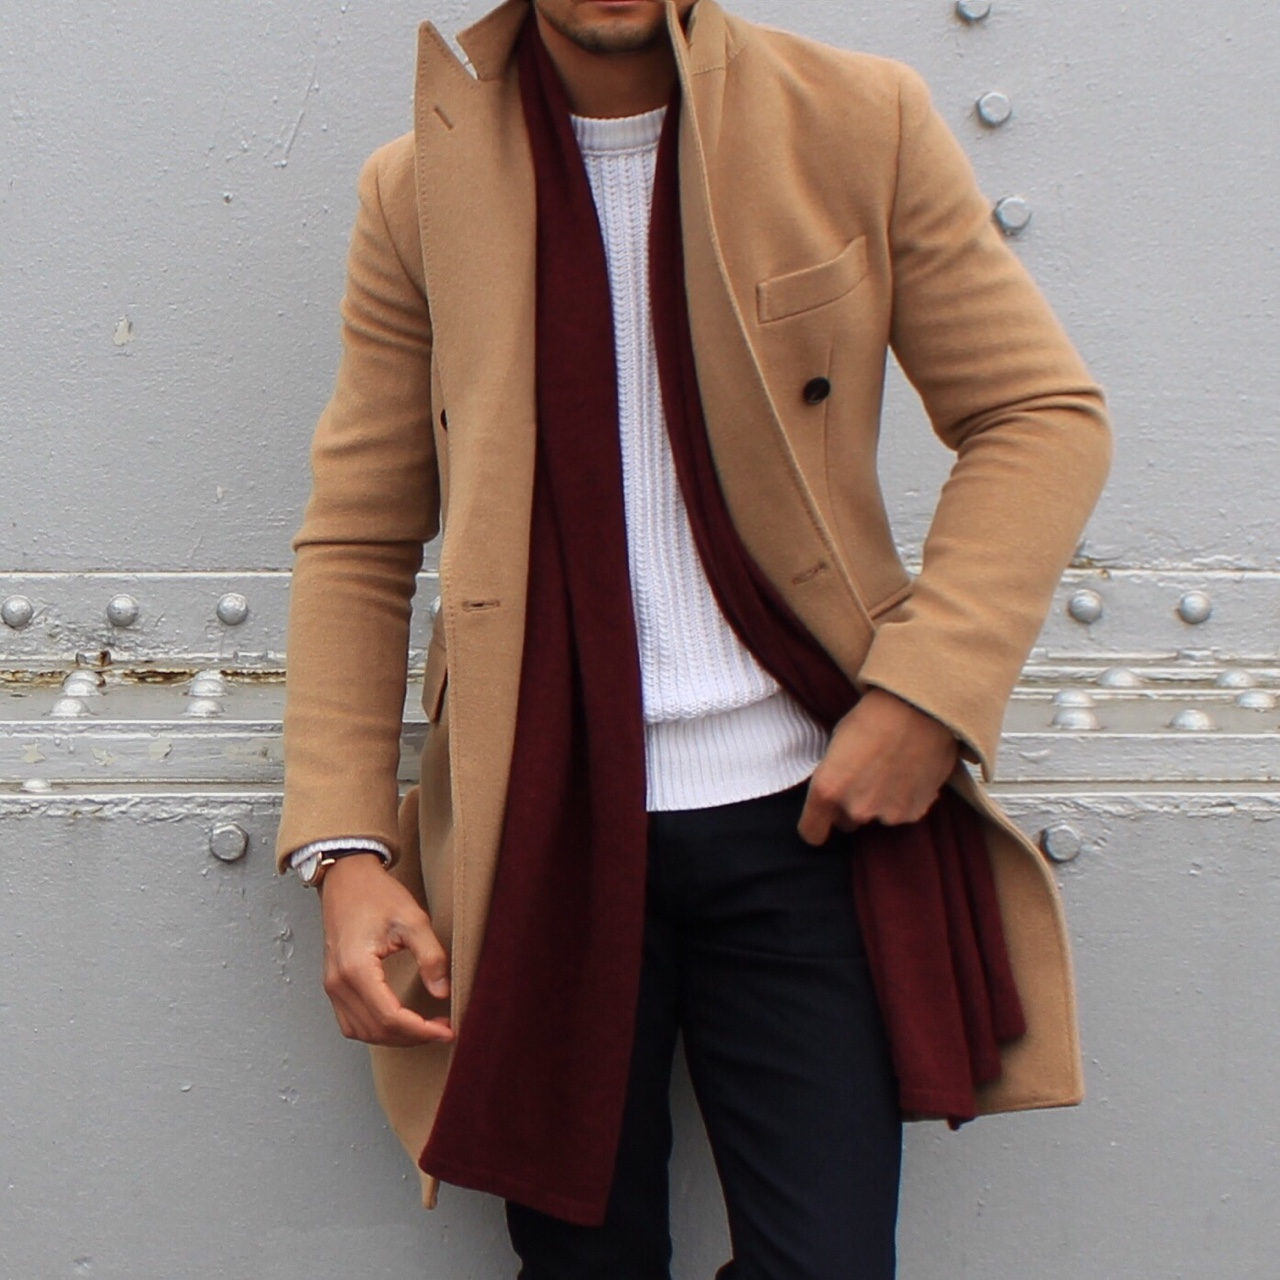 0133d2ecf97 Fashion Experts Tell Us Their Predictions For Men s Fashion Trends In  2018 19 – Fupping